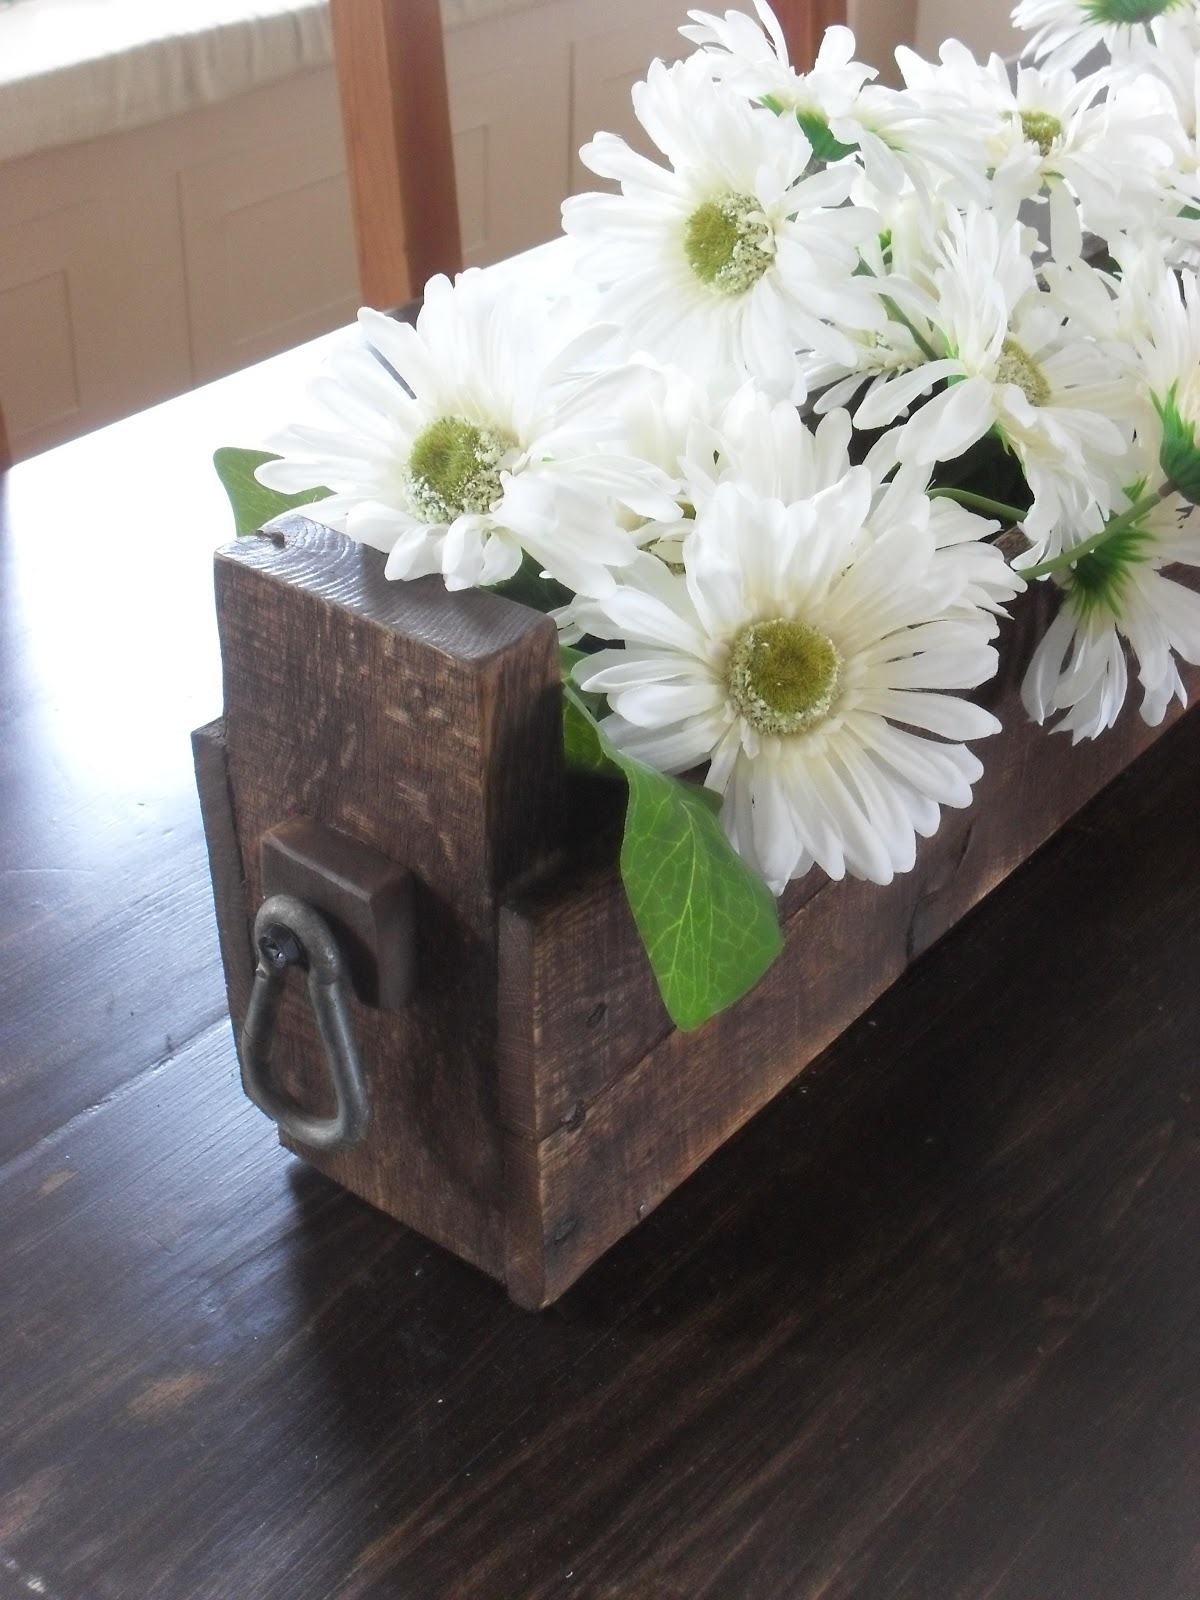 Suitable Functional Kitchen Table Centerpiece Now